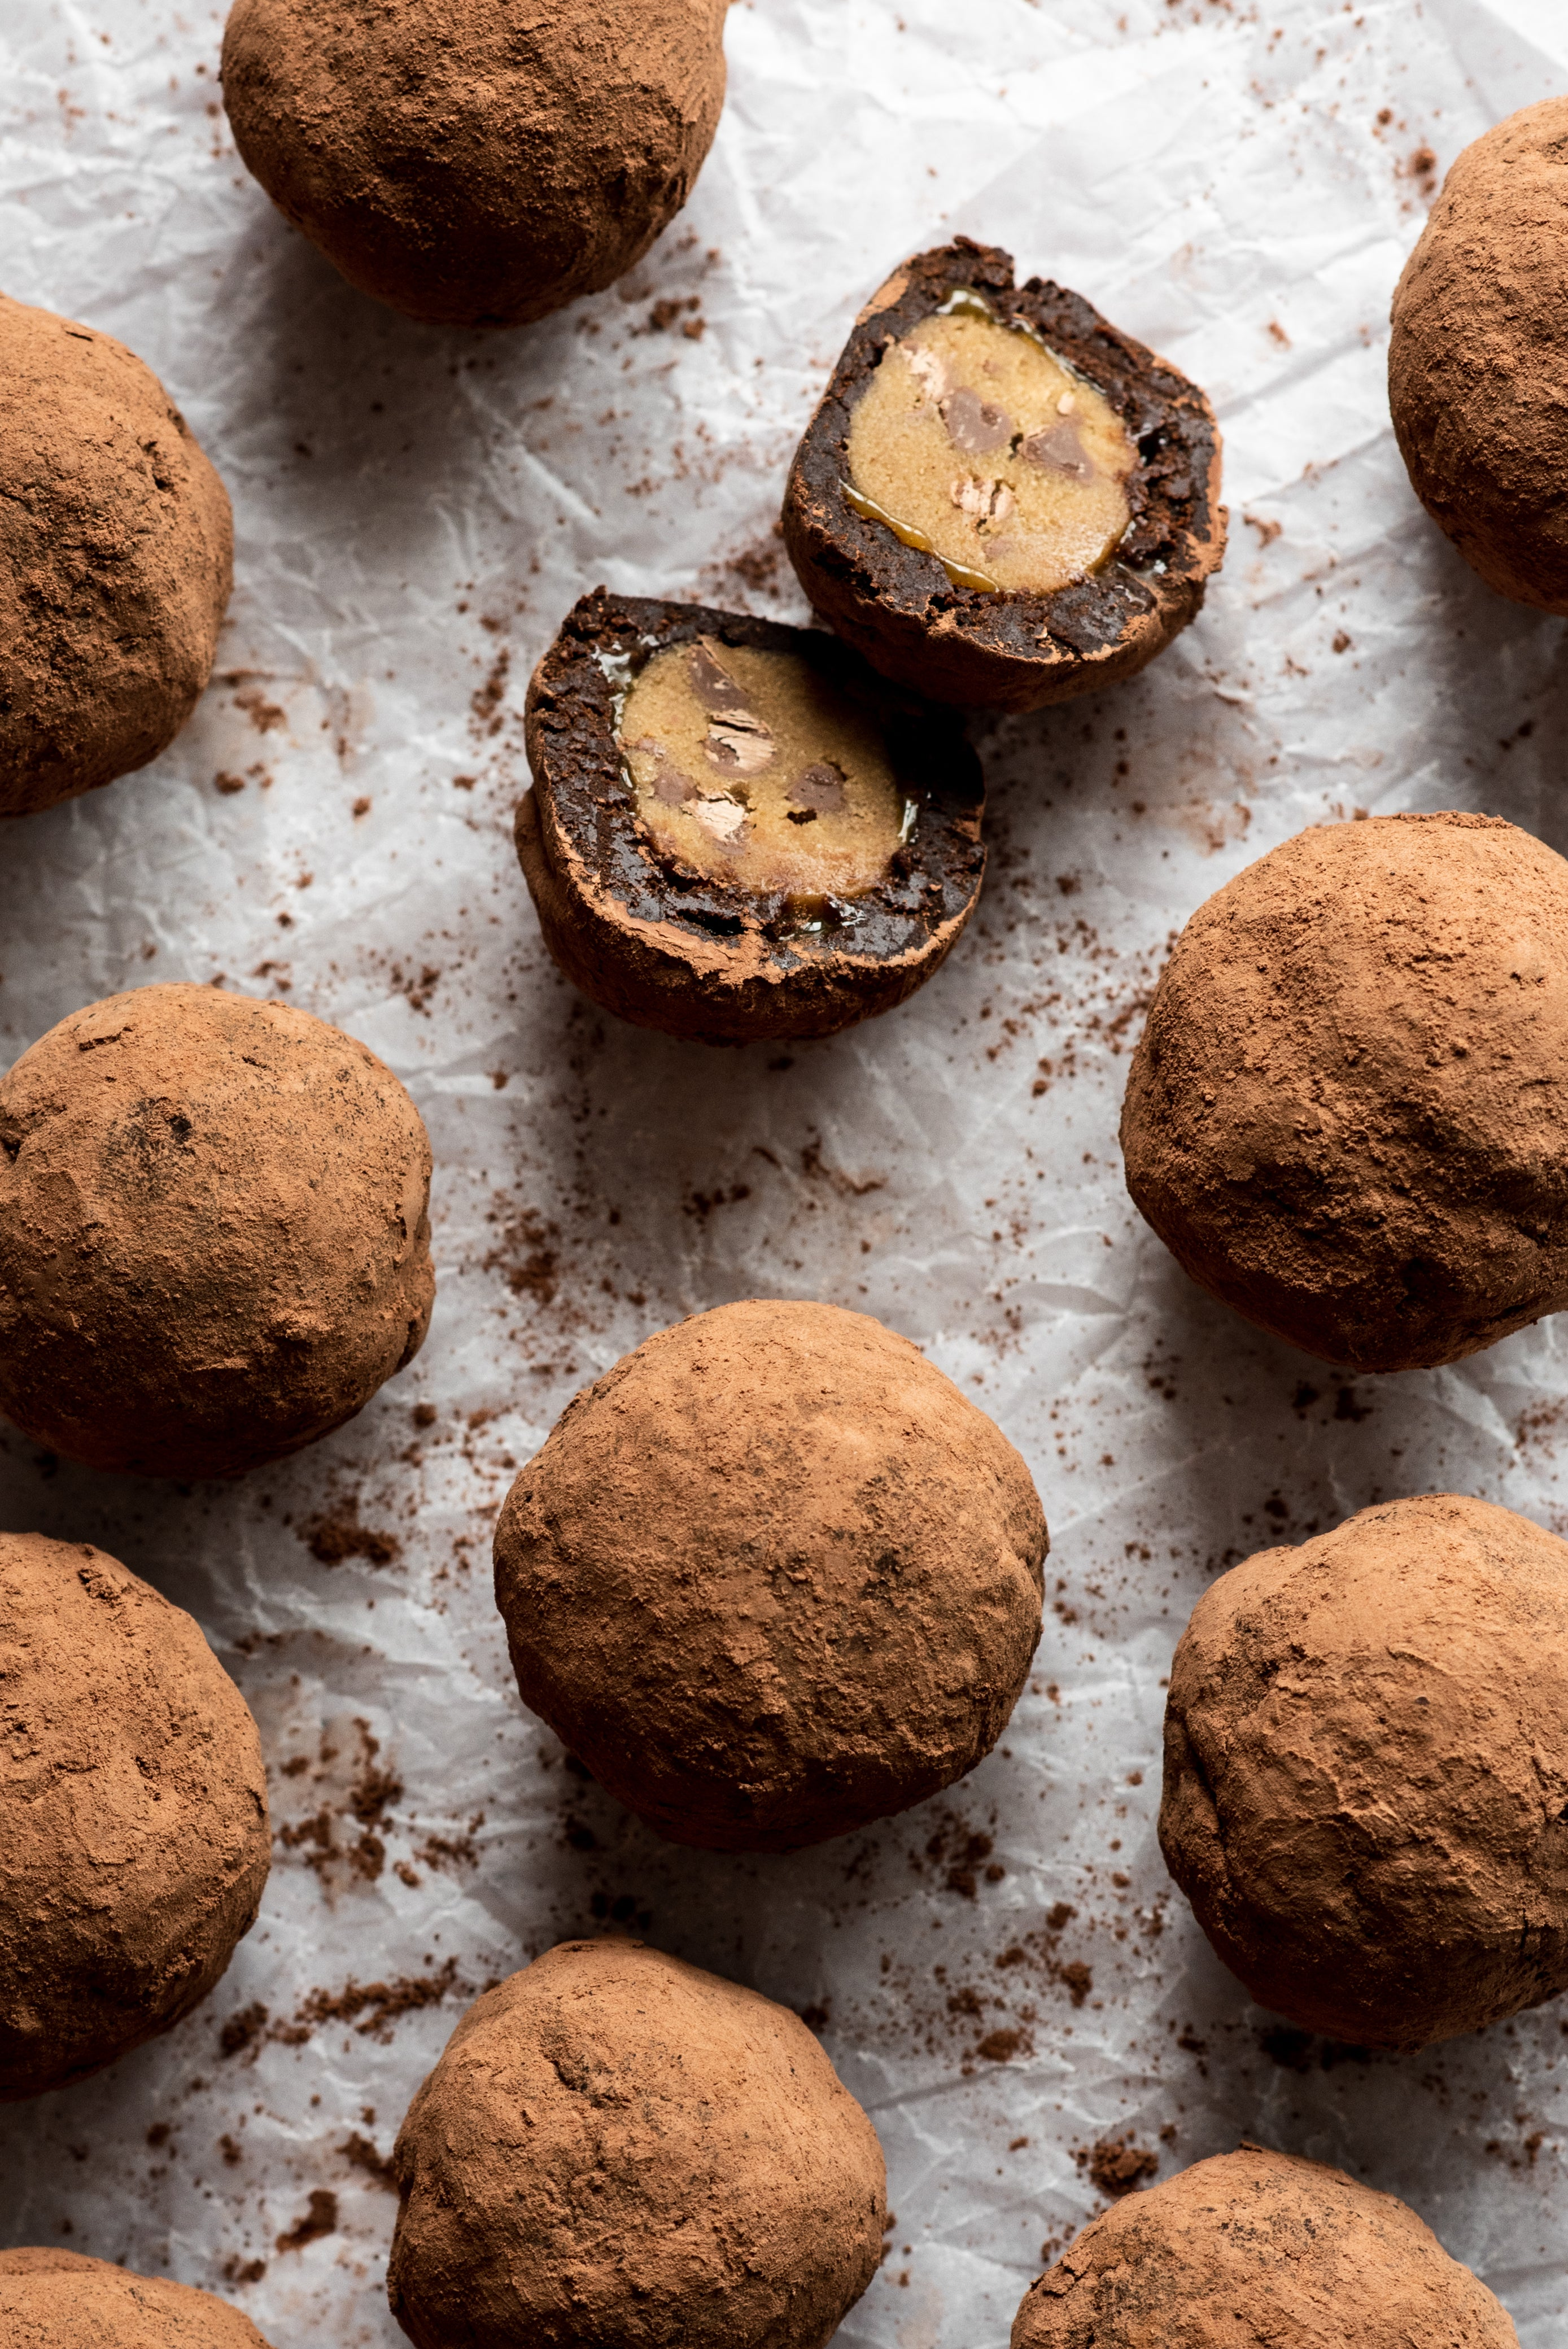 Cocoa dusted brownie truffles with one split in half